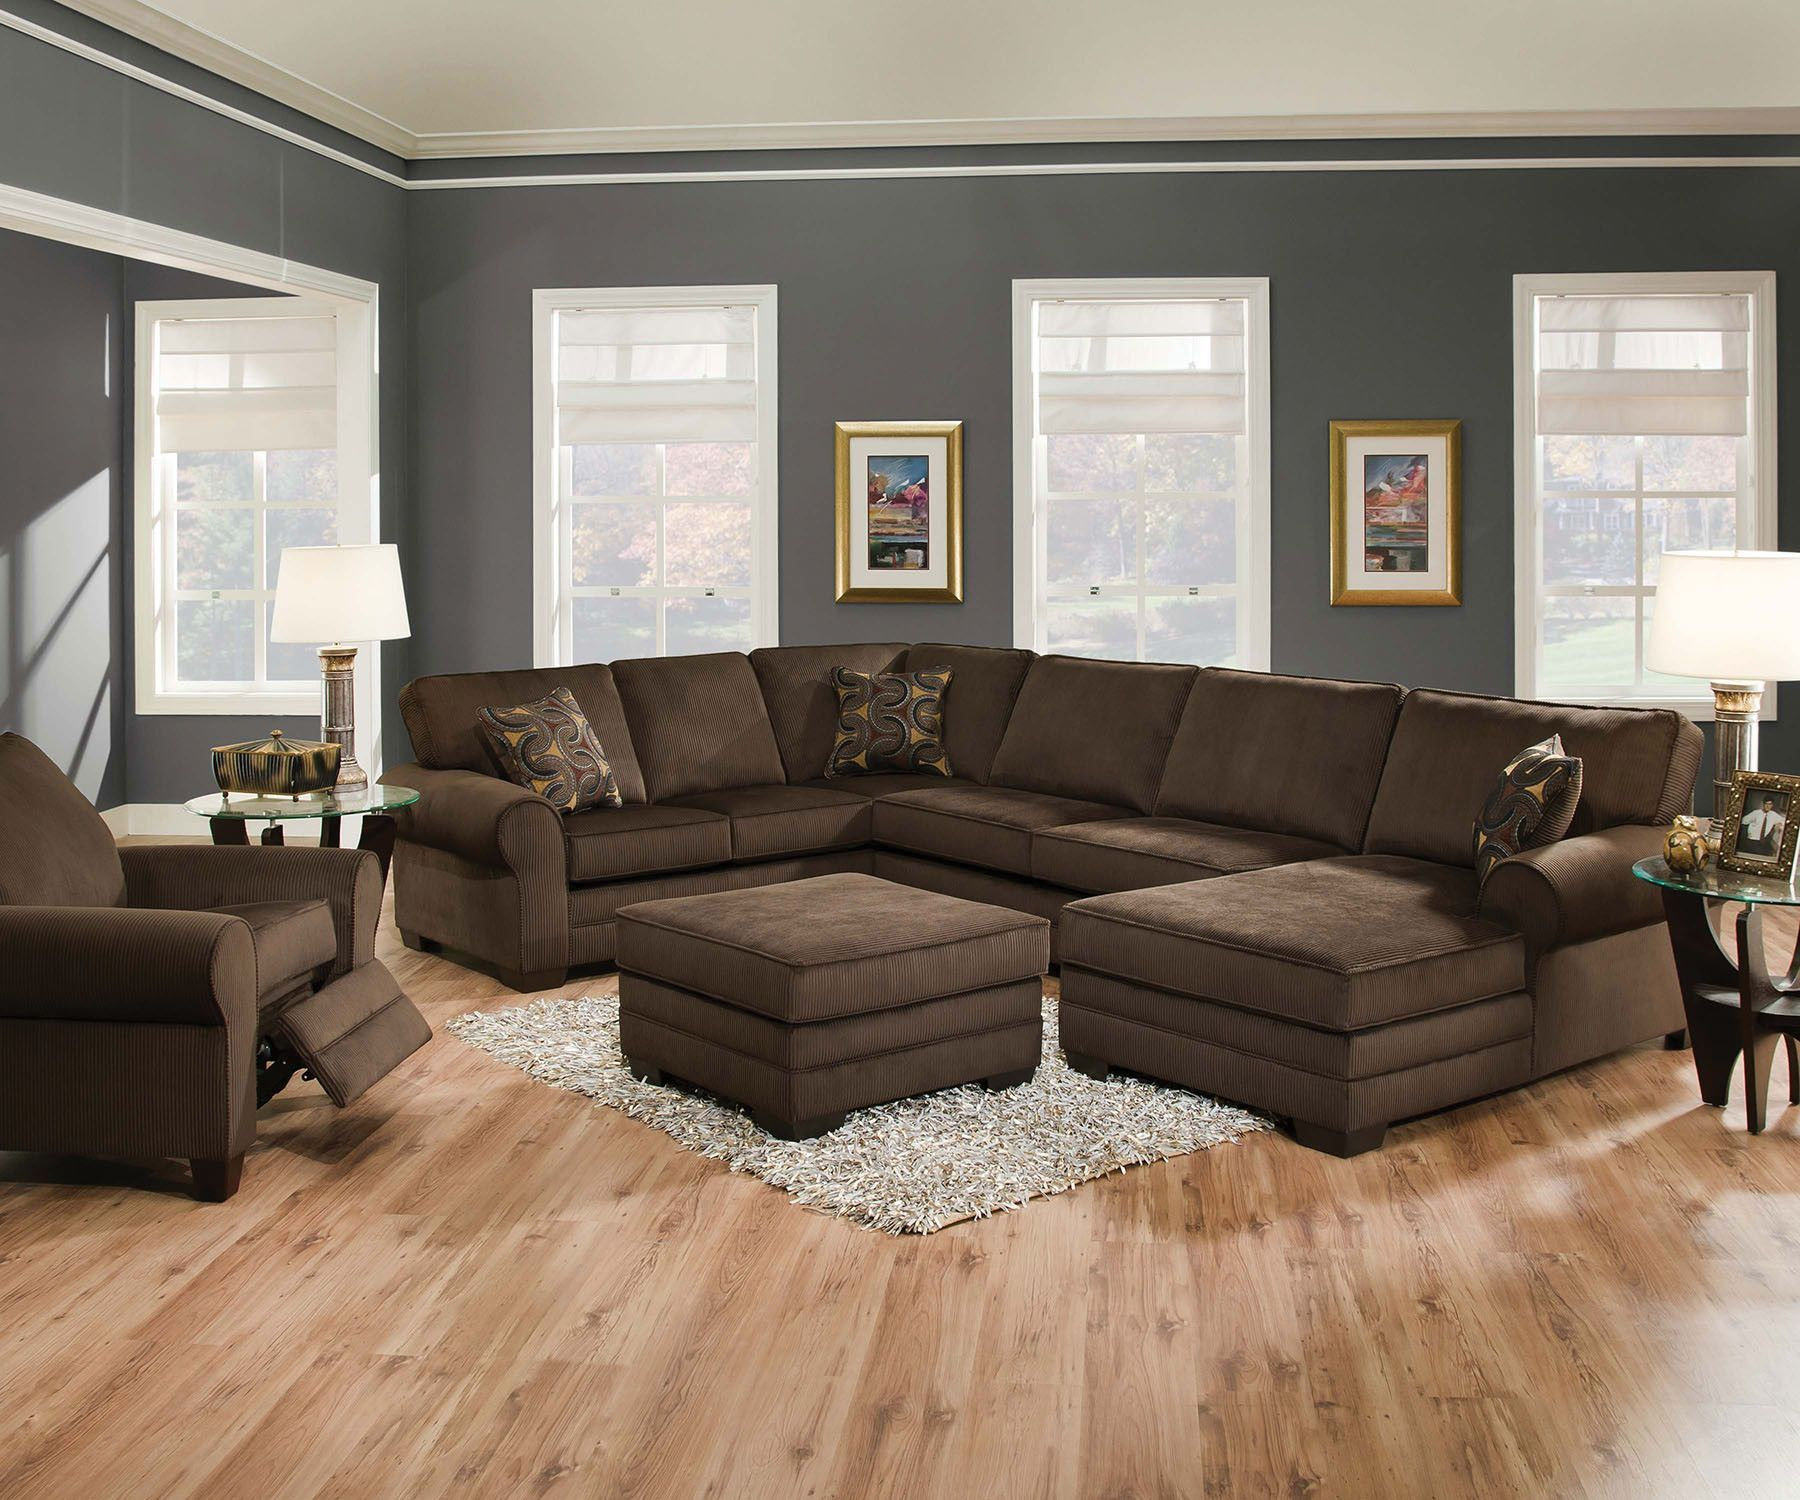 Tenner Sectional Sofa 50610 1089 Features Made In Usa Loose Seat Cushion Back Wood Frame Accent Pillows Included Dimension Section